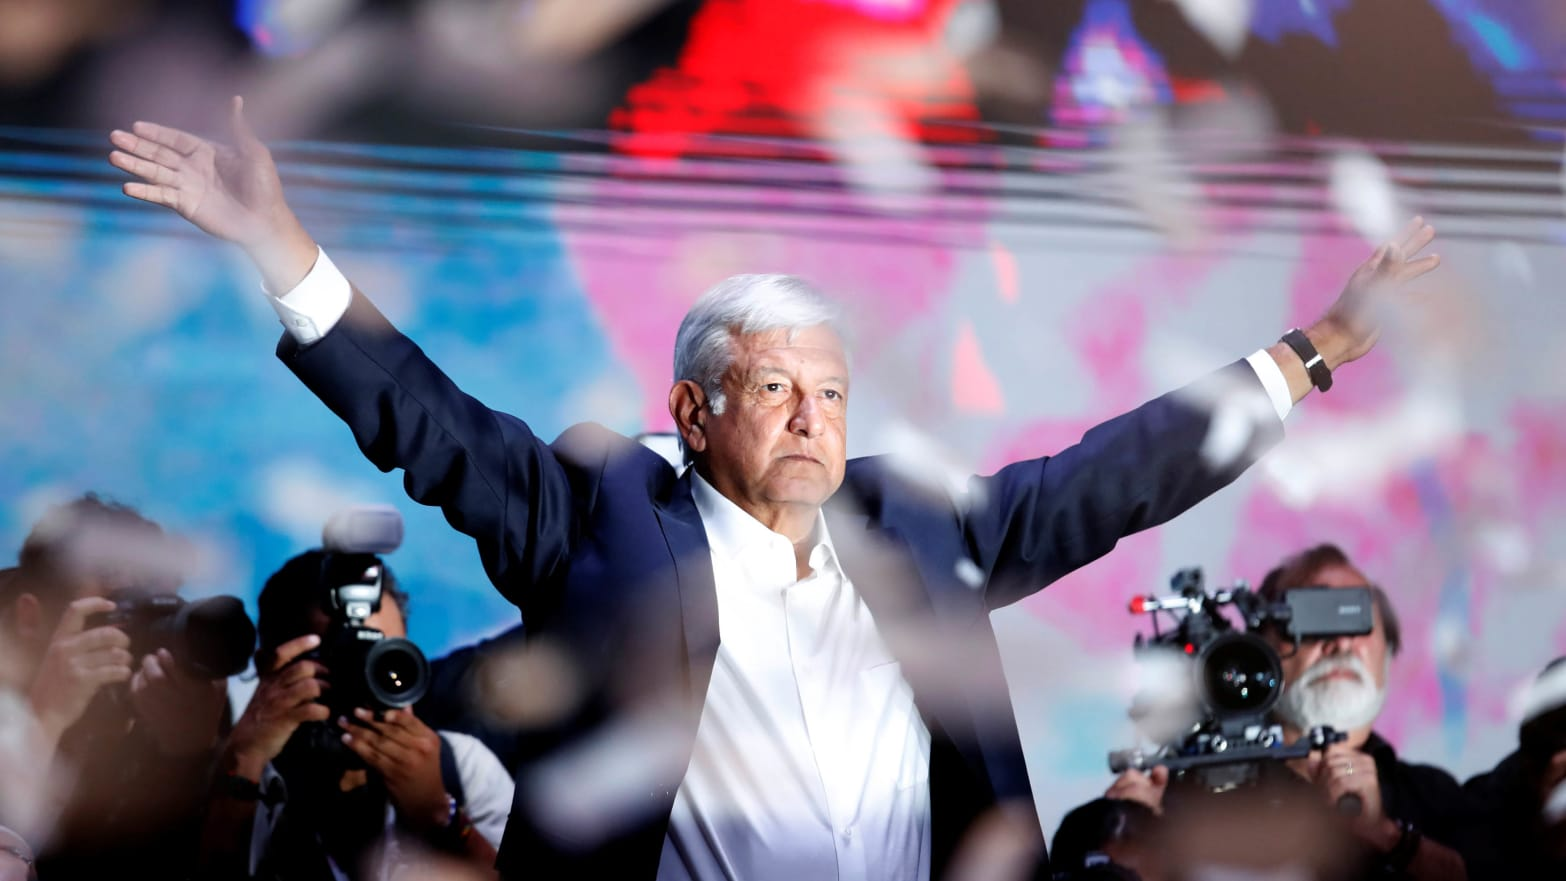 The Cartel's Deadly Grip on Mexico's Elections